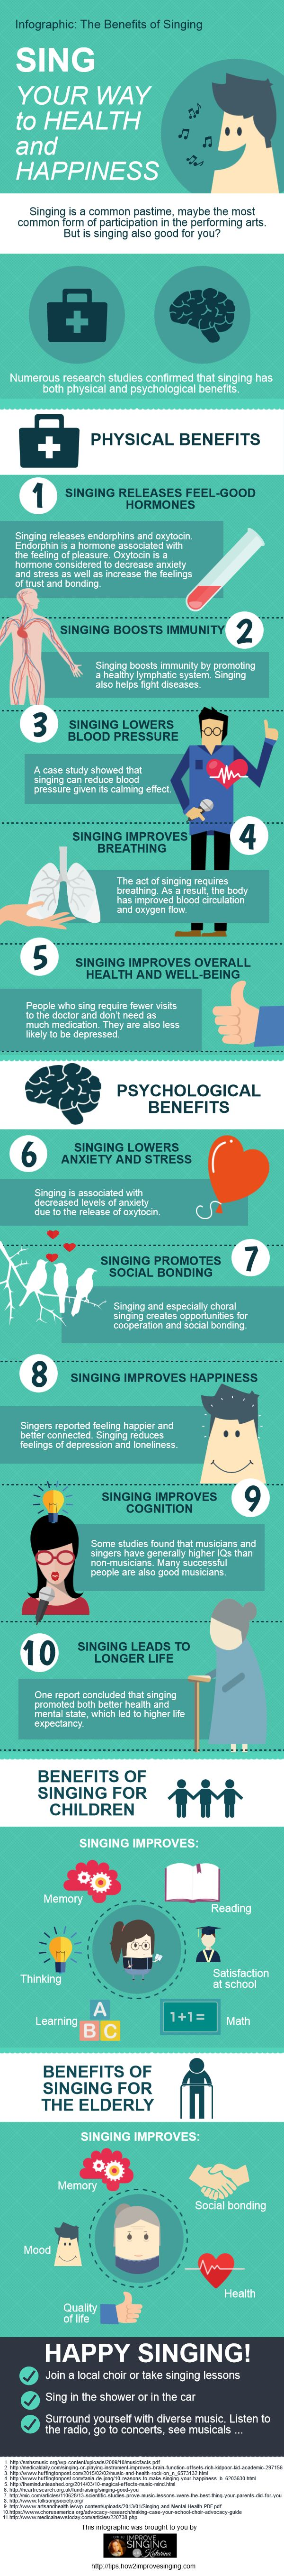 www.KidsSingStudio.com: Guest Post--Infographic: The Benefits of Singing